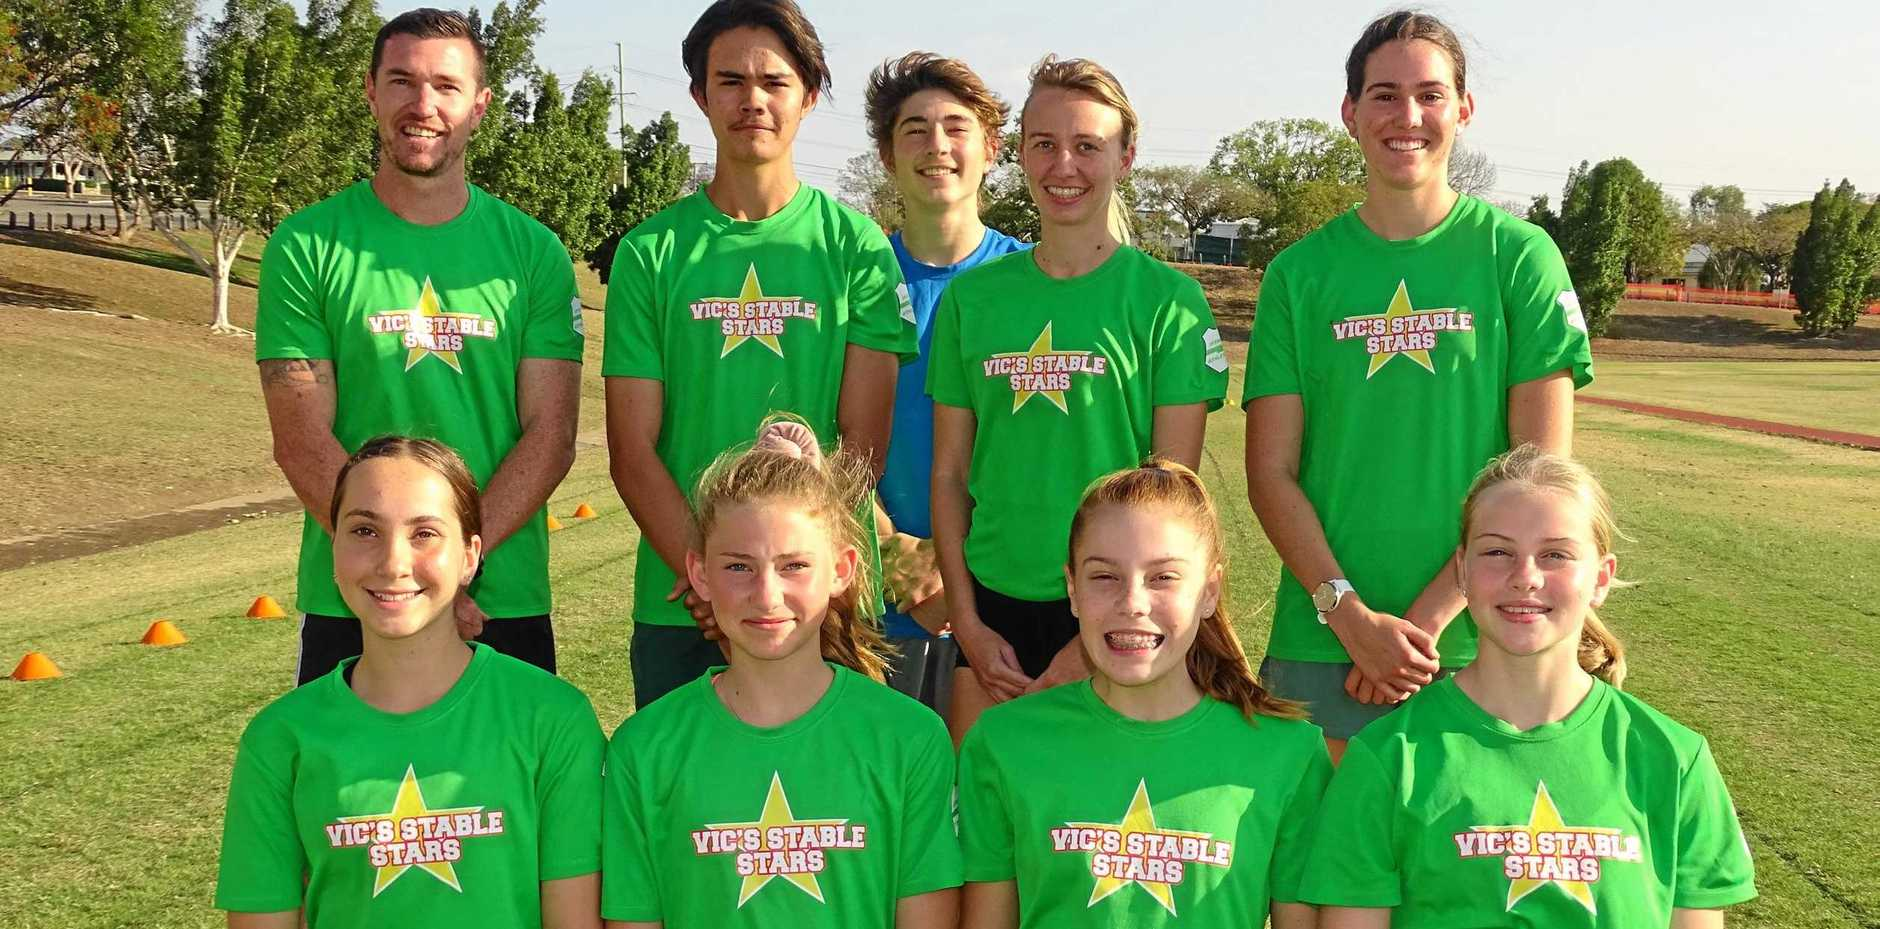 RUNNERS TO WATCH: Ipswich and District Athletic Club competitors preparing for this weekend's Somerset Gift: Patrick McCarthey, Kerryn Ryan, Jack Vine, Elizabeth Melrose, Madison Wells, Leah Clark, Lily Vine, Savannah Bucknell and Mikaela Doneley. Absent: Hayley and Erin Wright and Danhniella Pedroni.